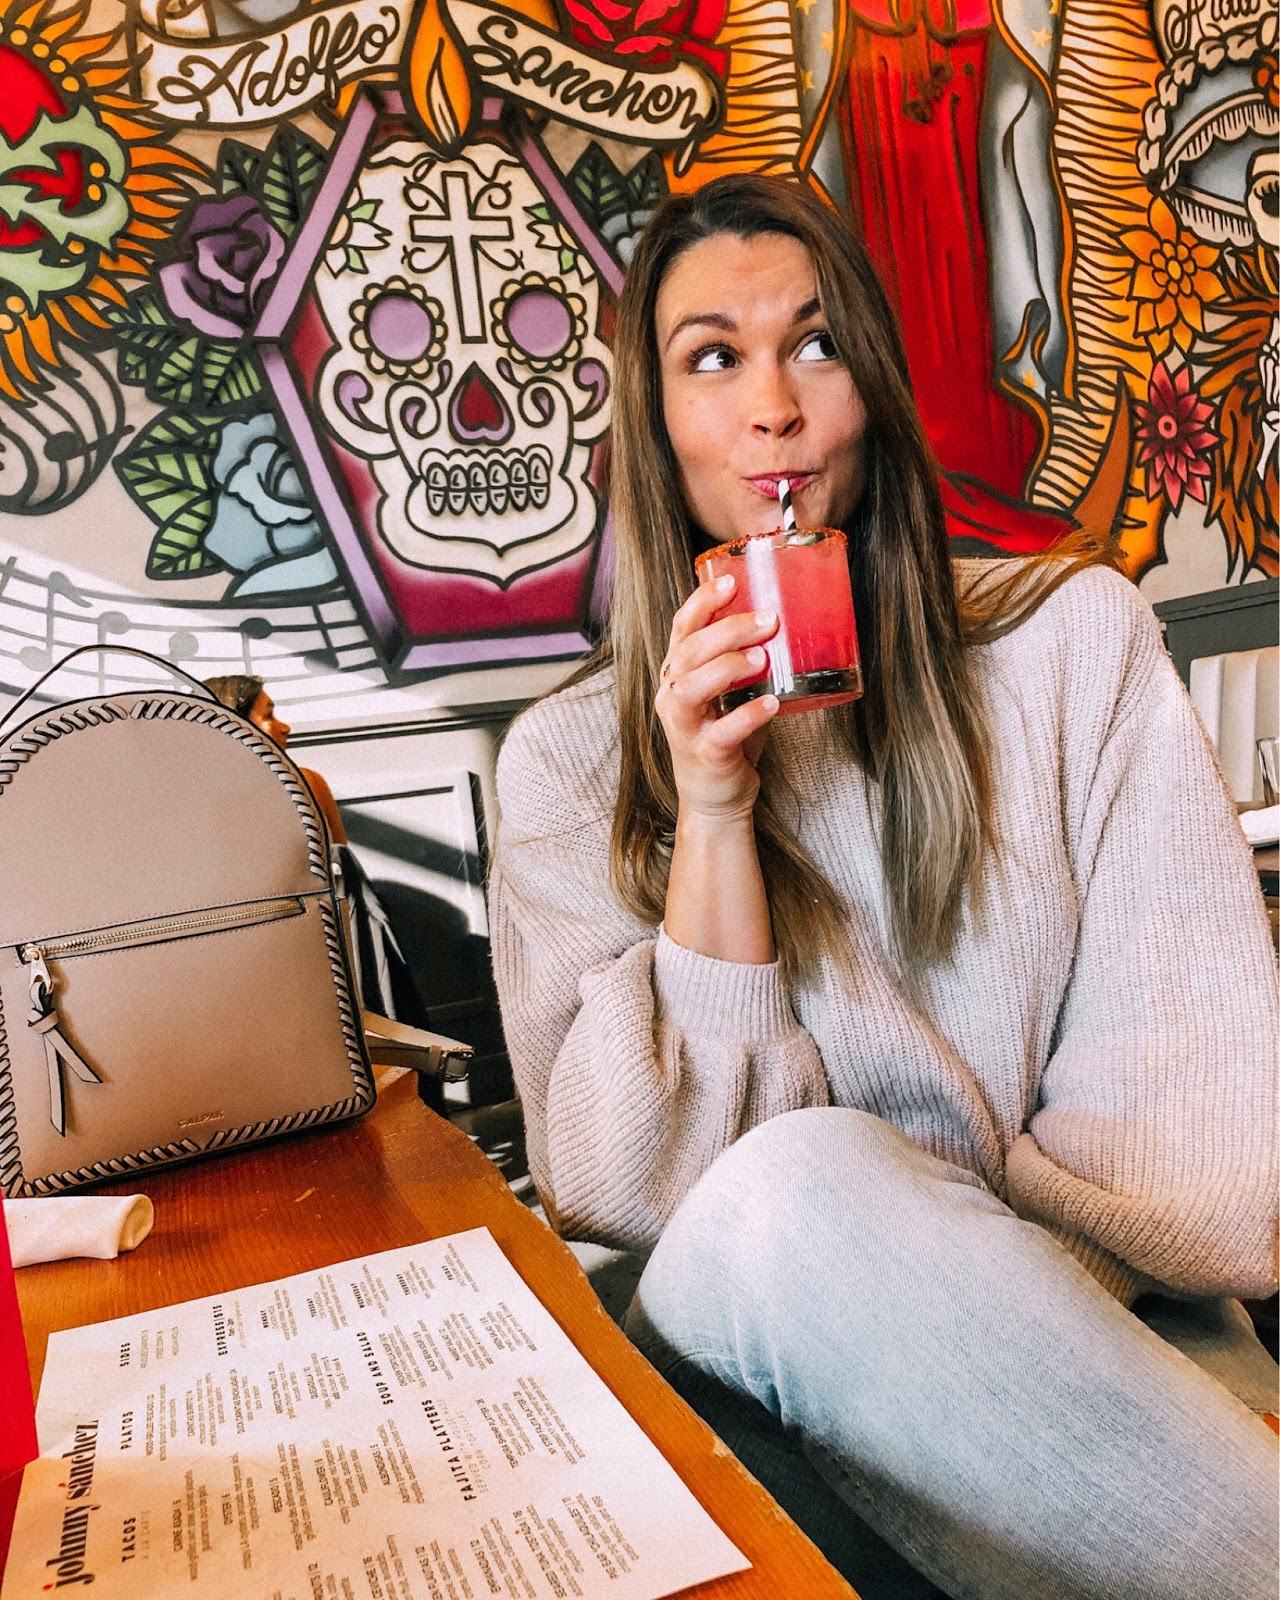 Travel blogger enjoying a spicy margarita at Johnny Sánchez in New Orleans